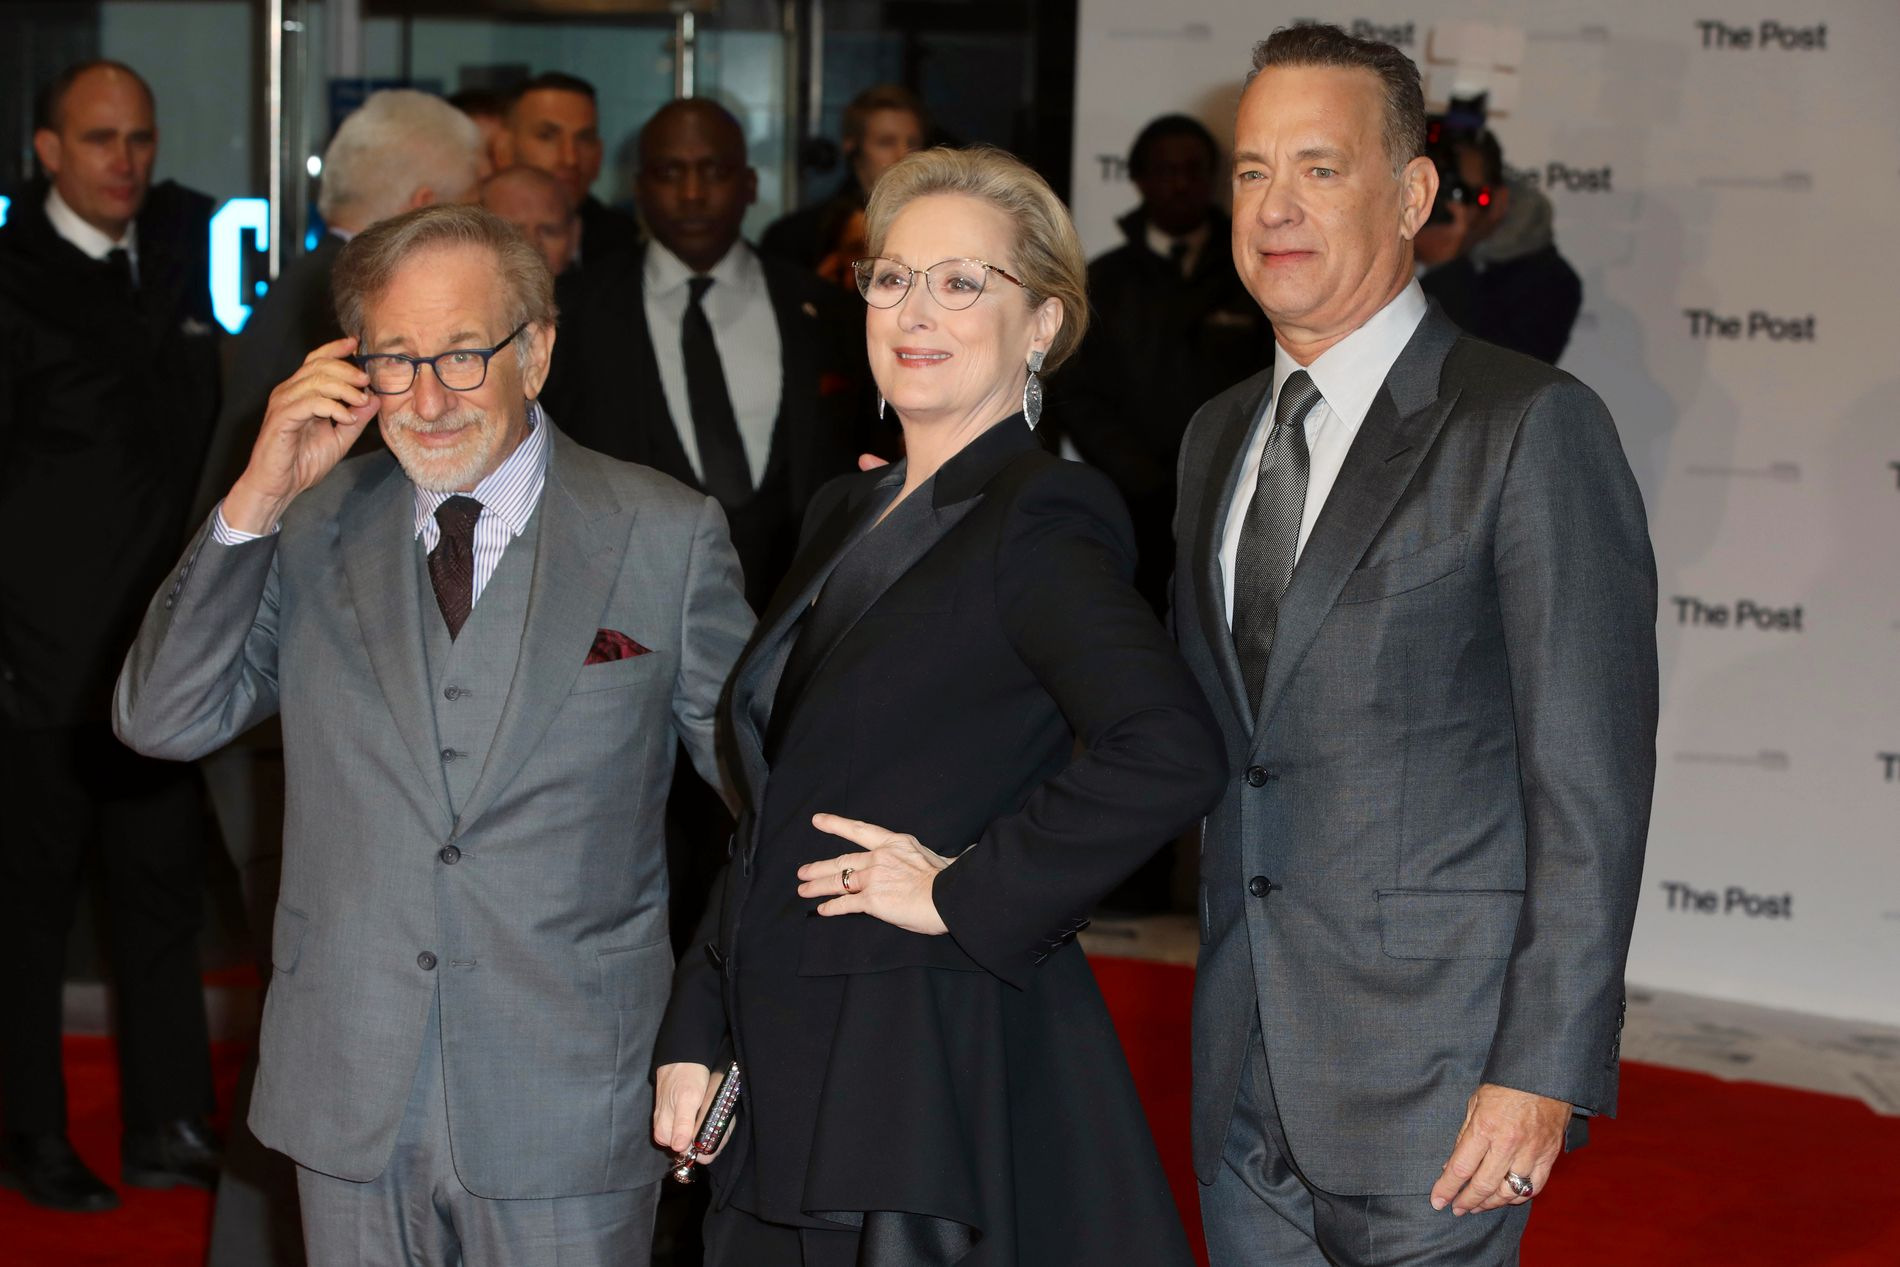 STJERNELAG: Steven Spielberg, Meryl Streep og Tom Hanks under lanseringen av «The Post» i London torsdag.